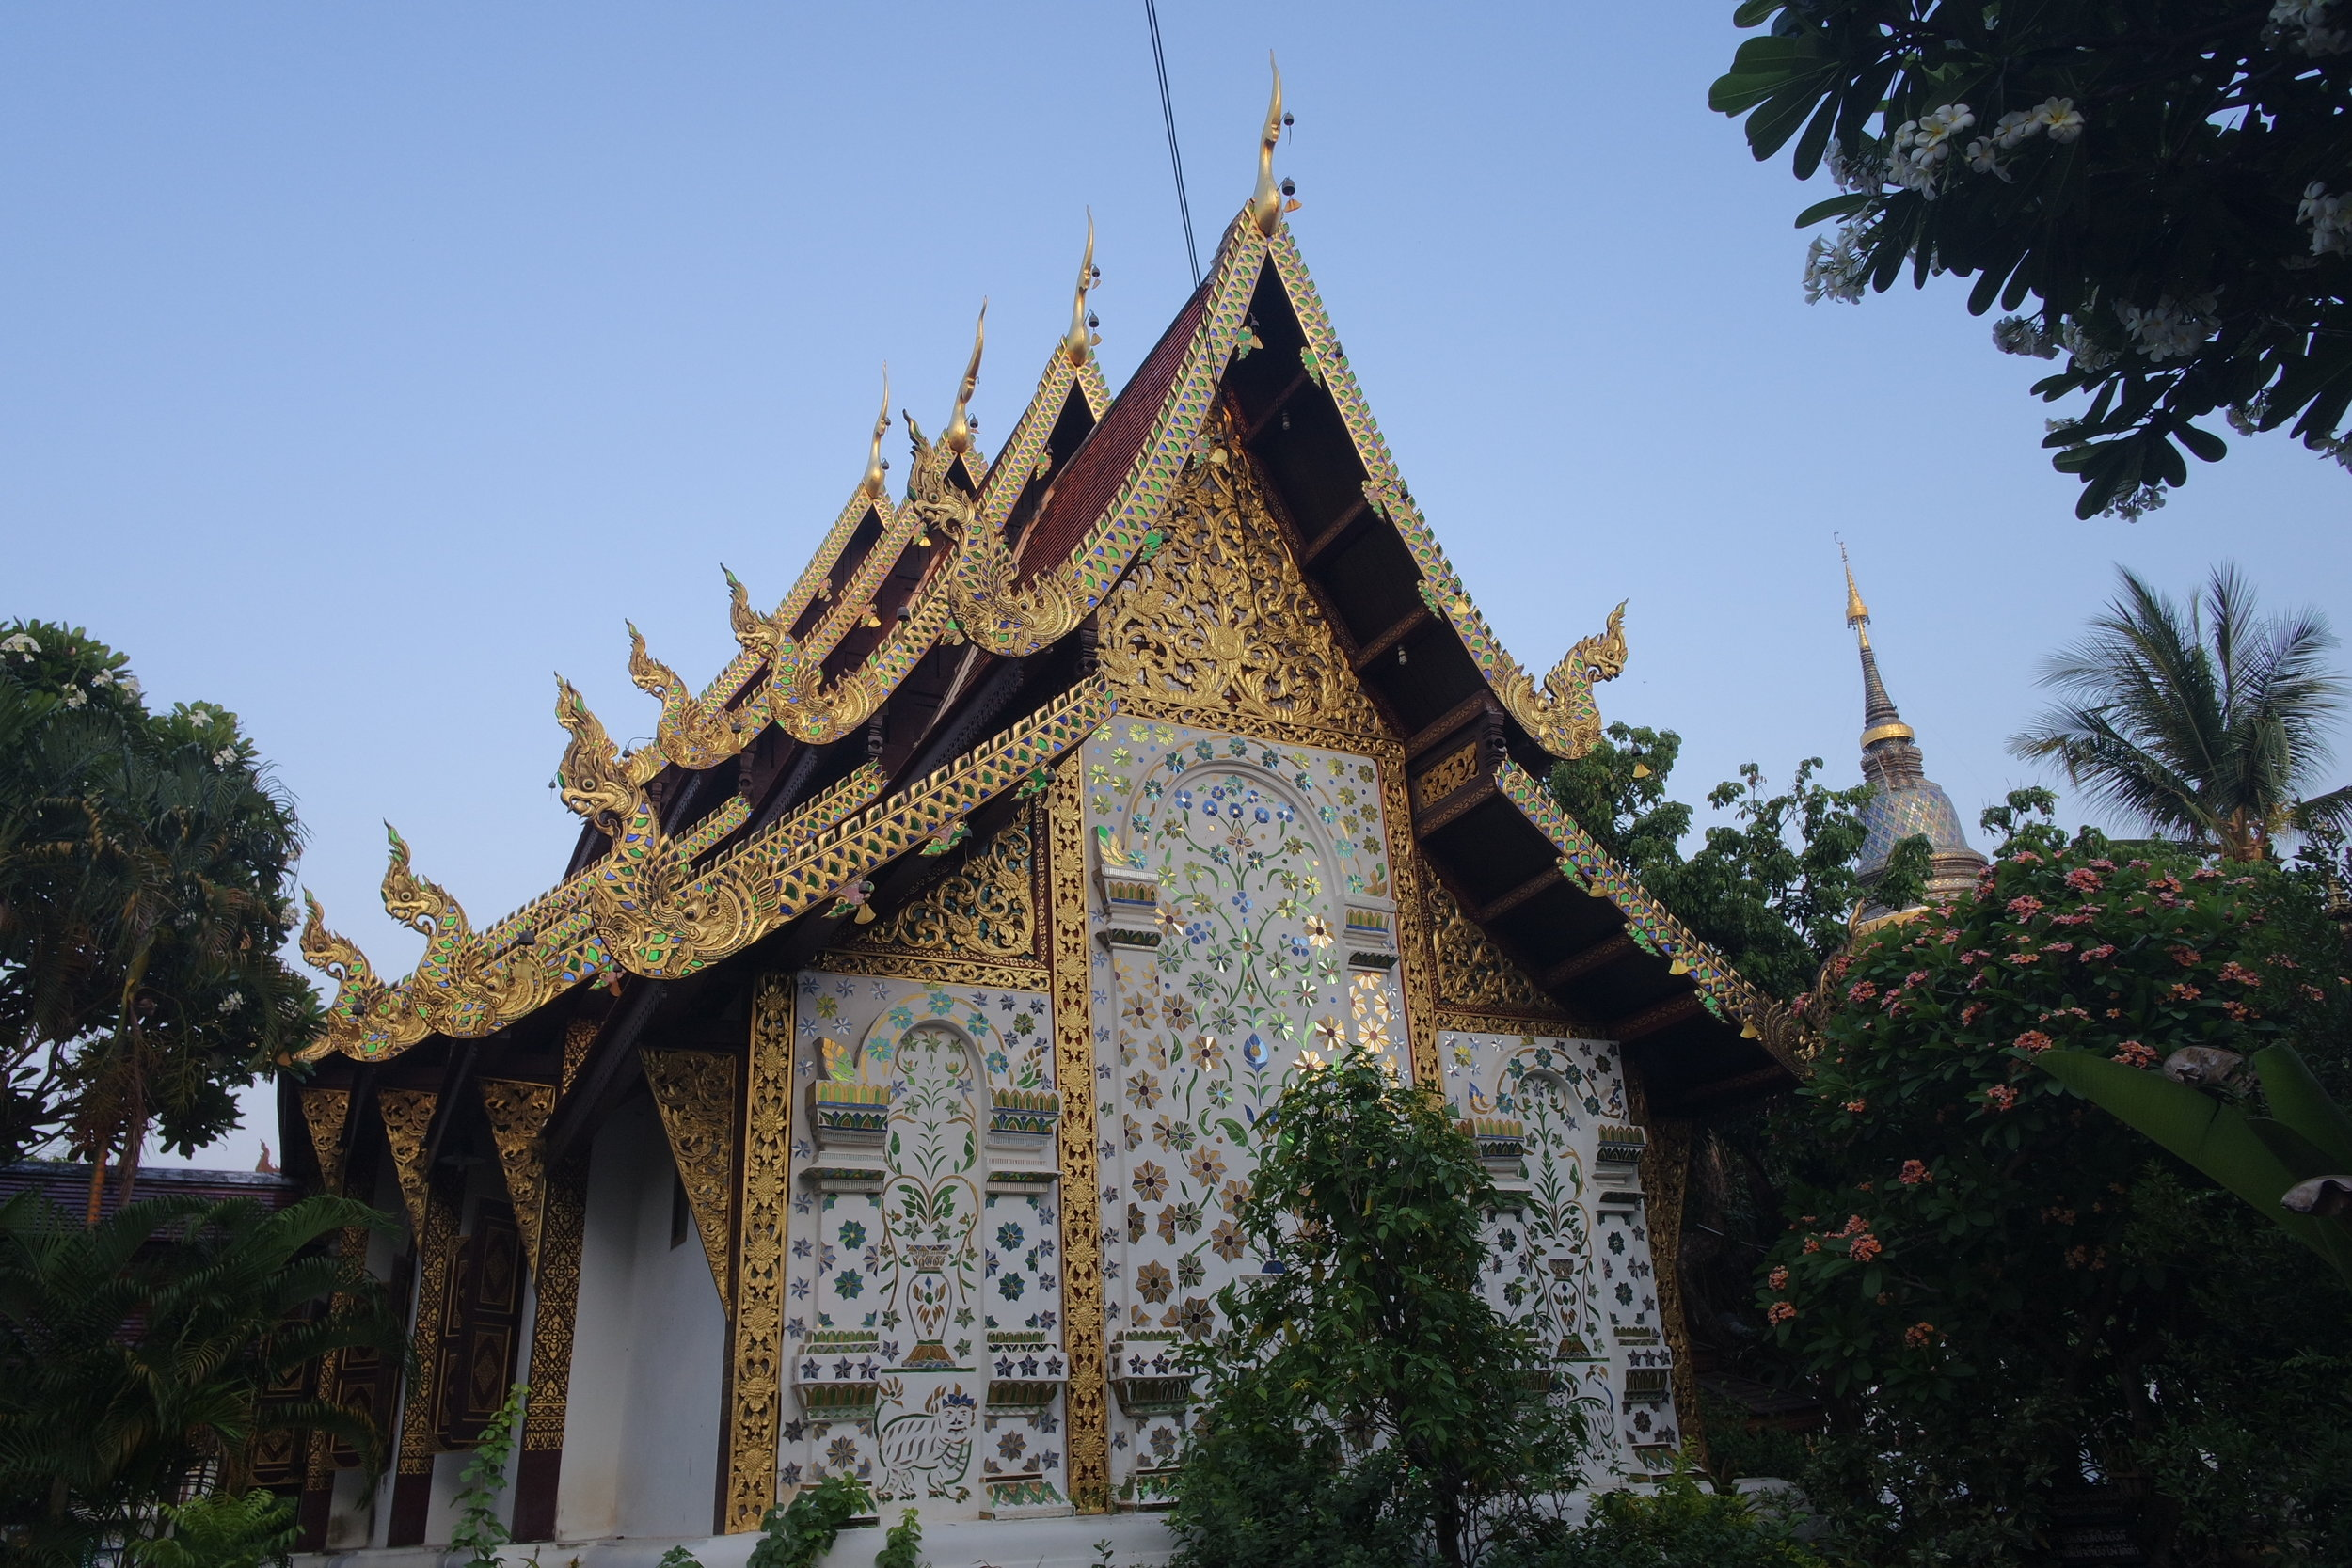 The prettiest part of Wat Ket Karam is the metallic mosaic on the back of the viharn